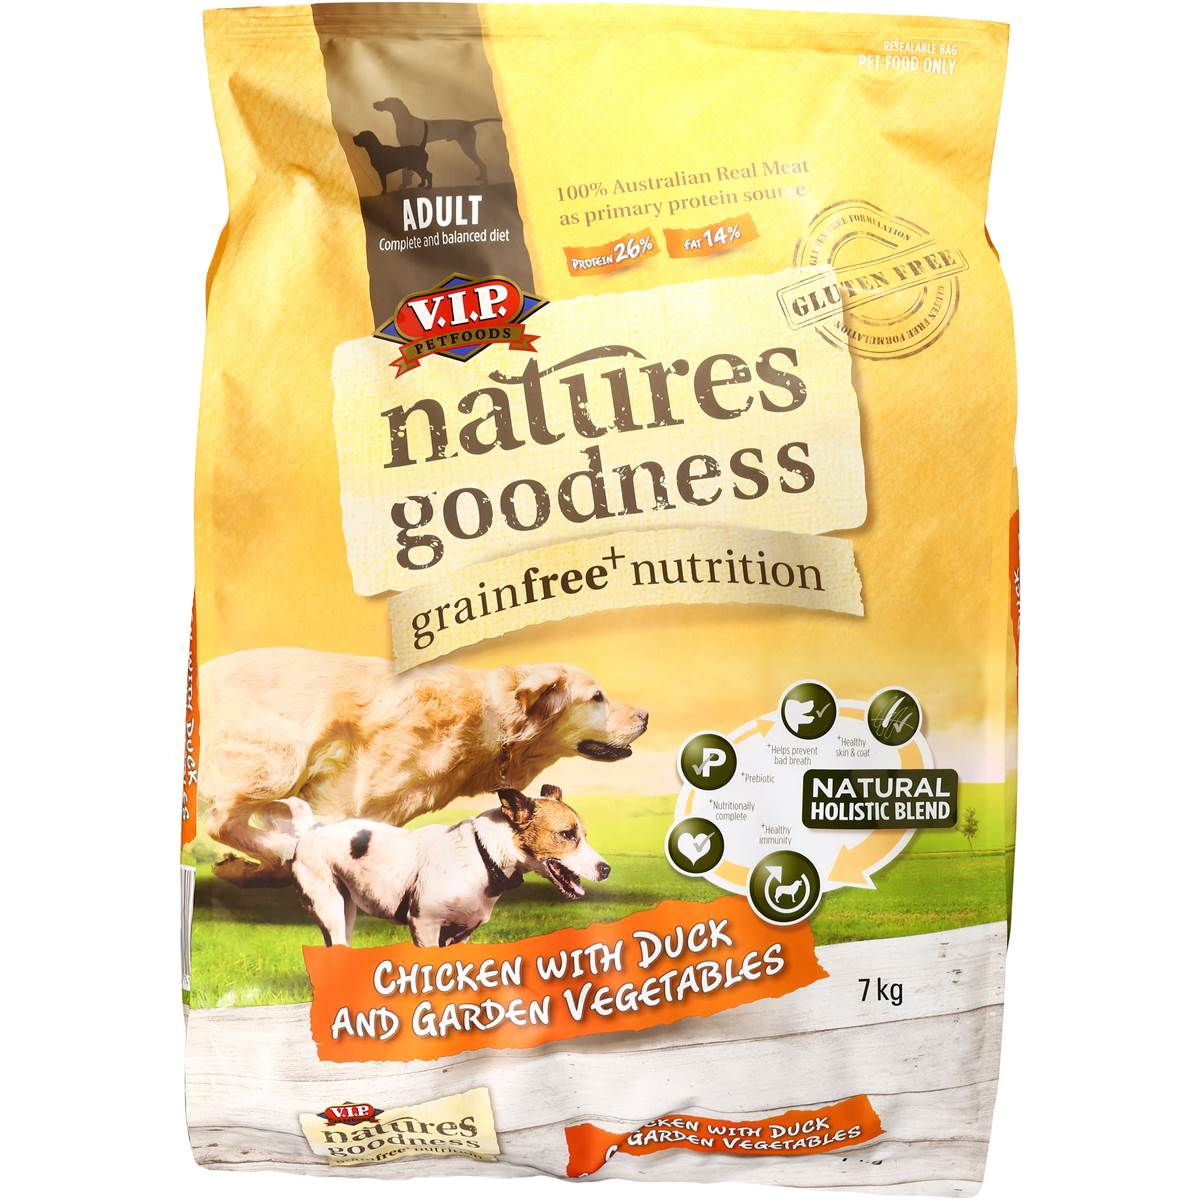 Healthiest Grain Free Dog Food